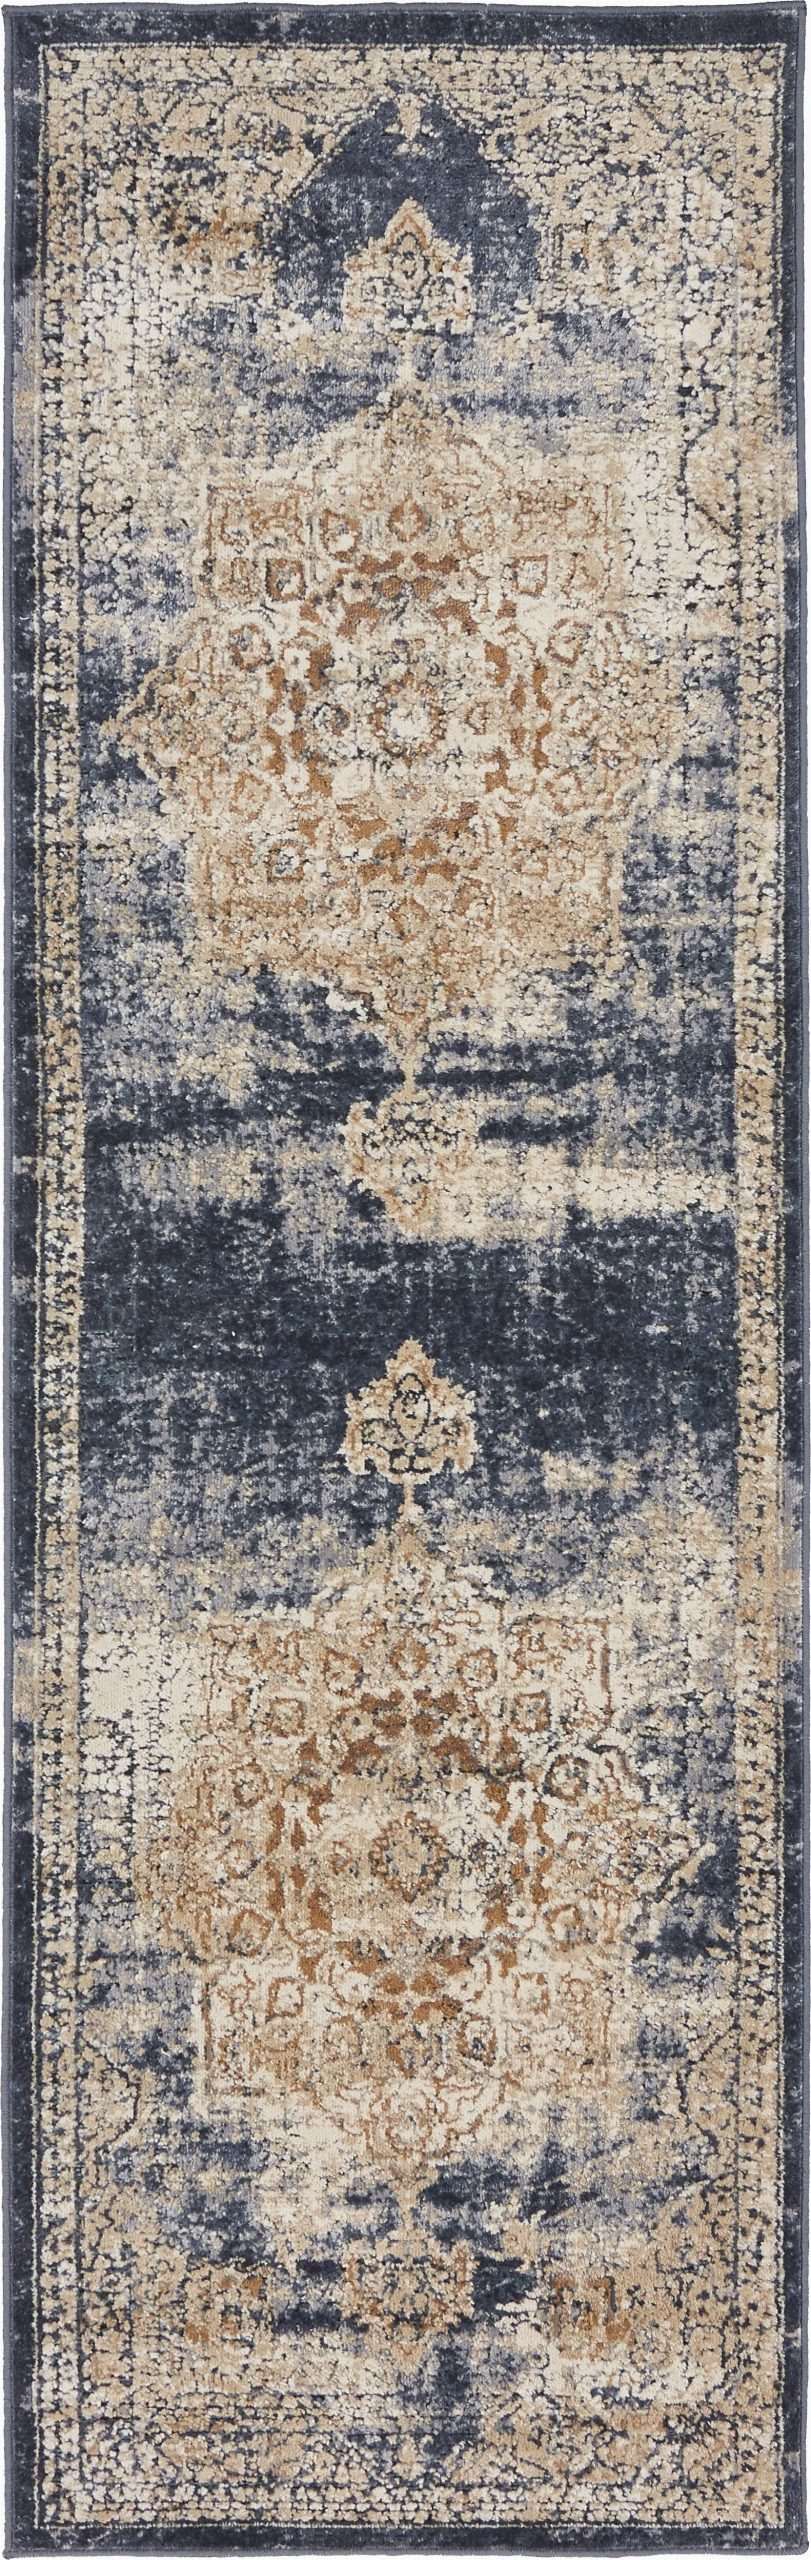 runner area rugs on sale c a1249 a 8